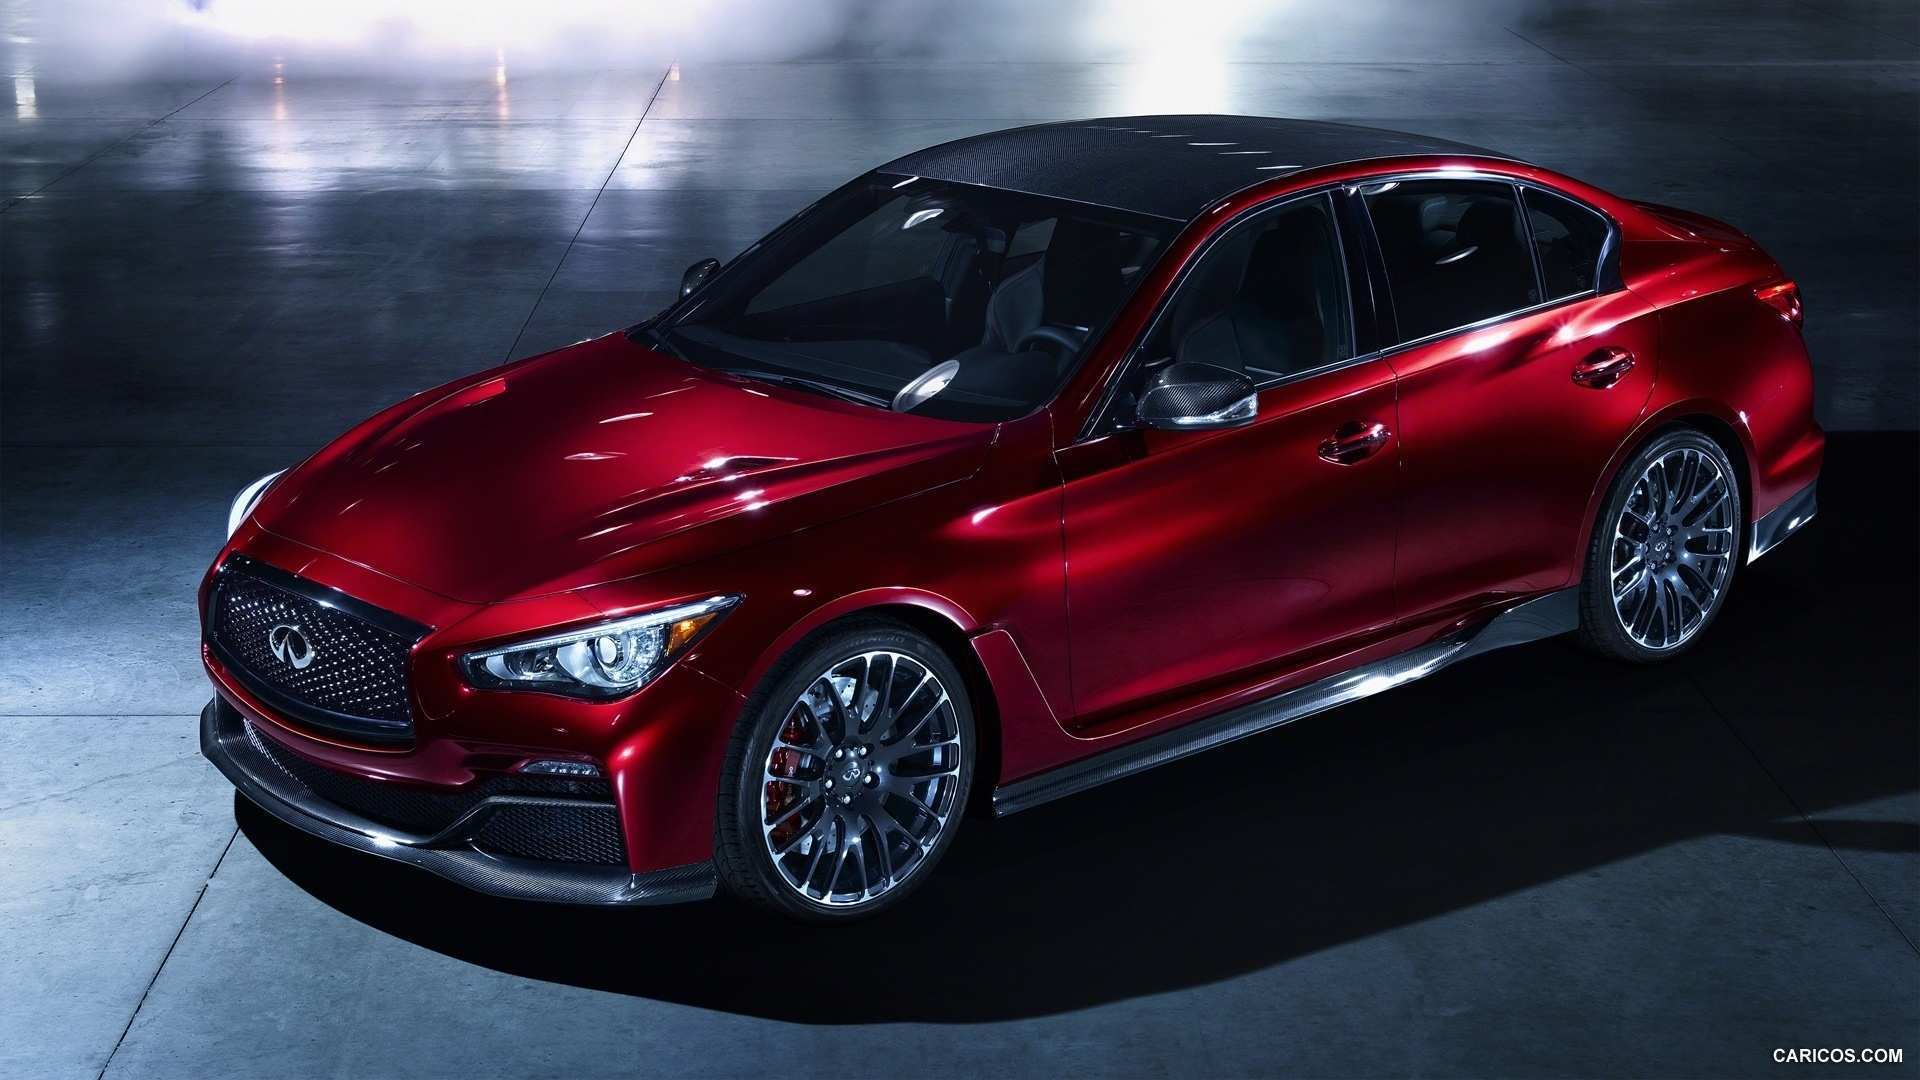 15 Concept of 2020 Infiniti Q50 Release Date New Review with 2020 Infiniti Q50 Release Date